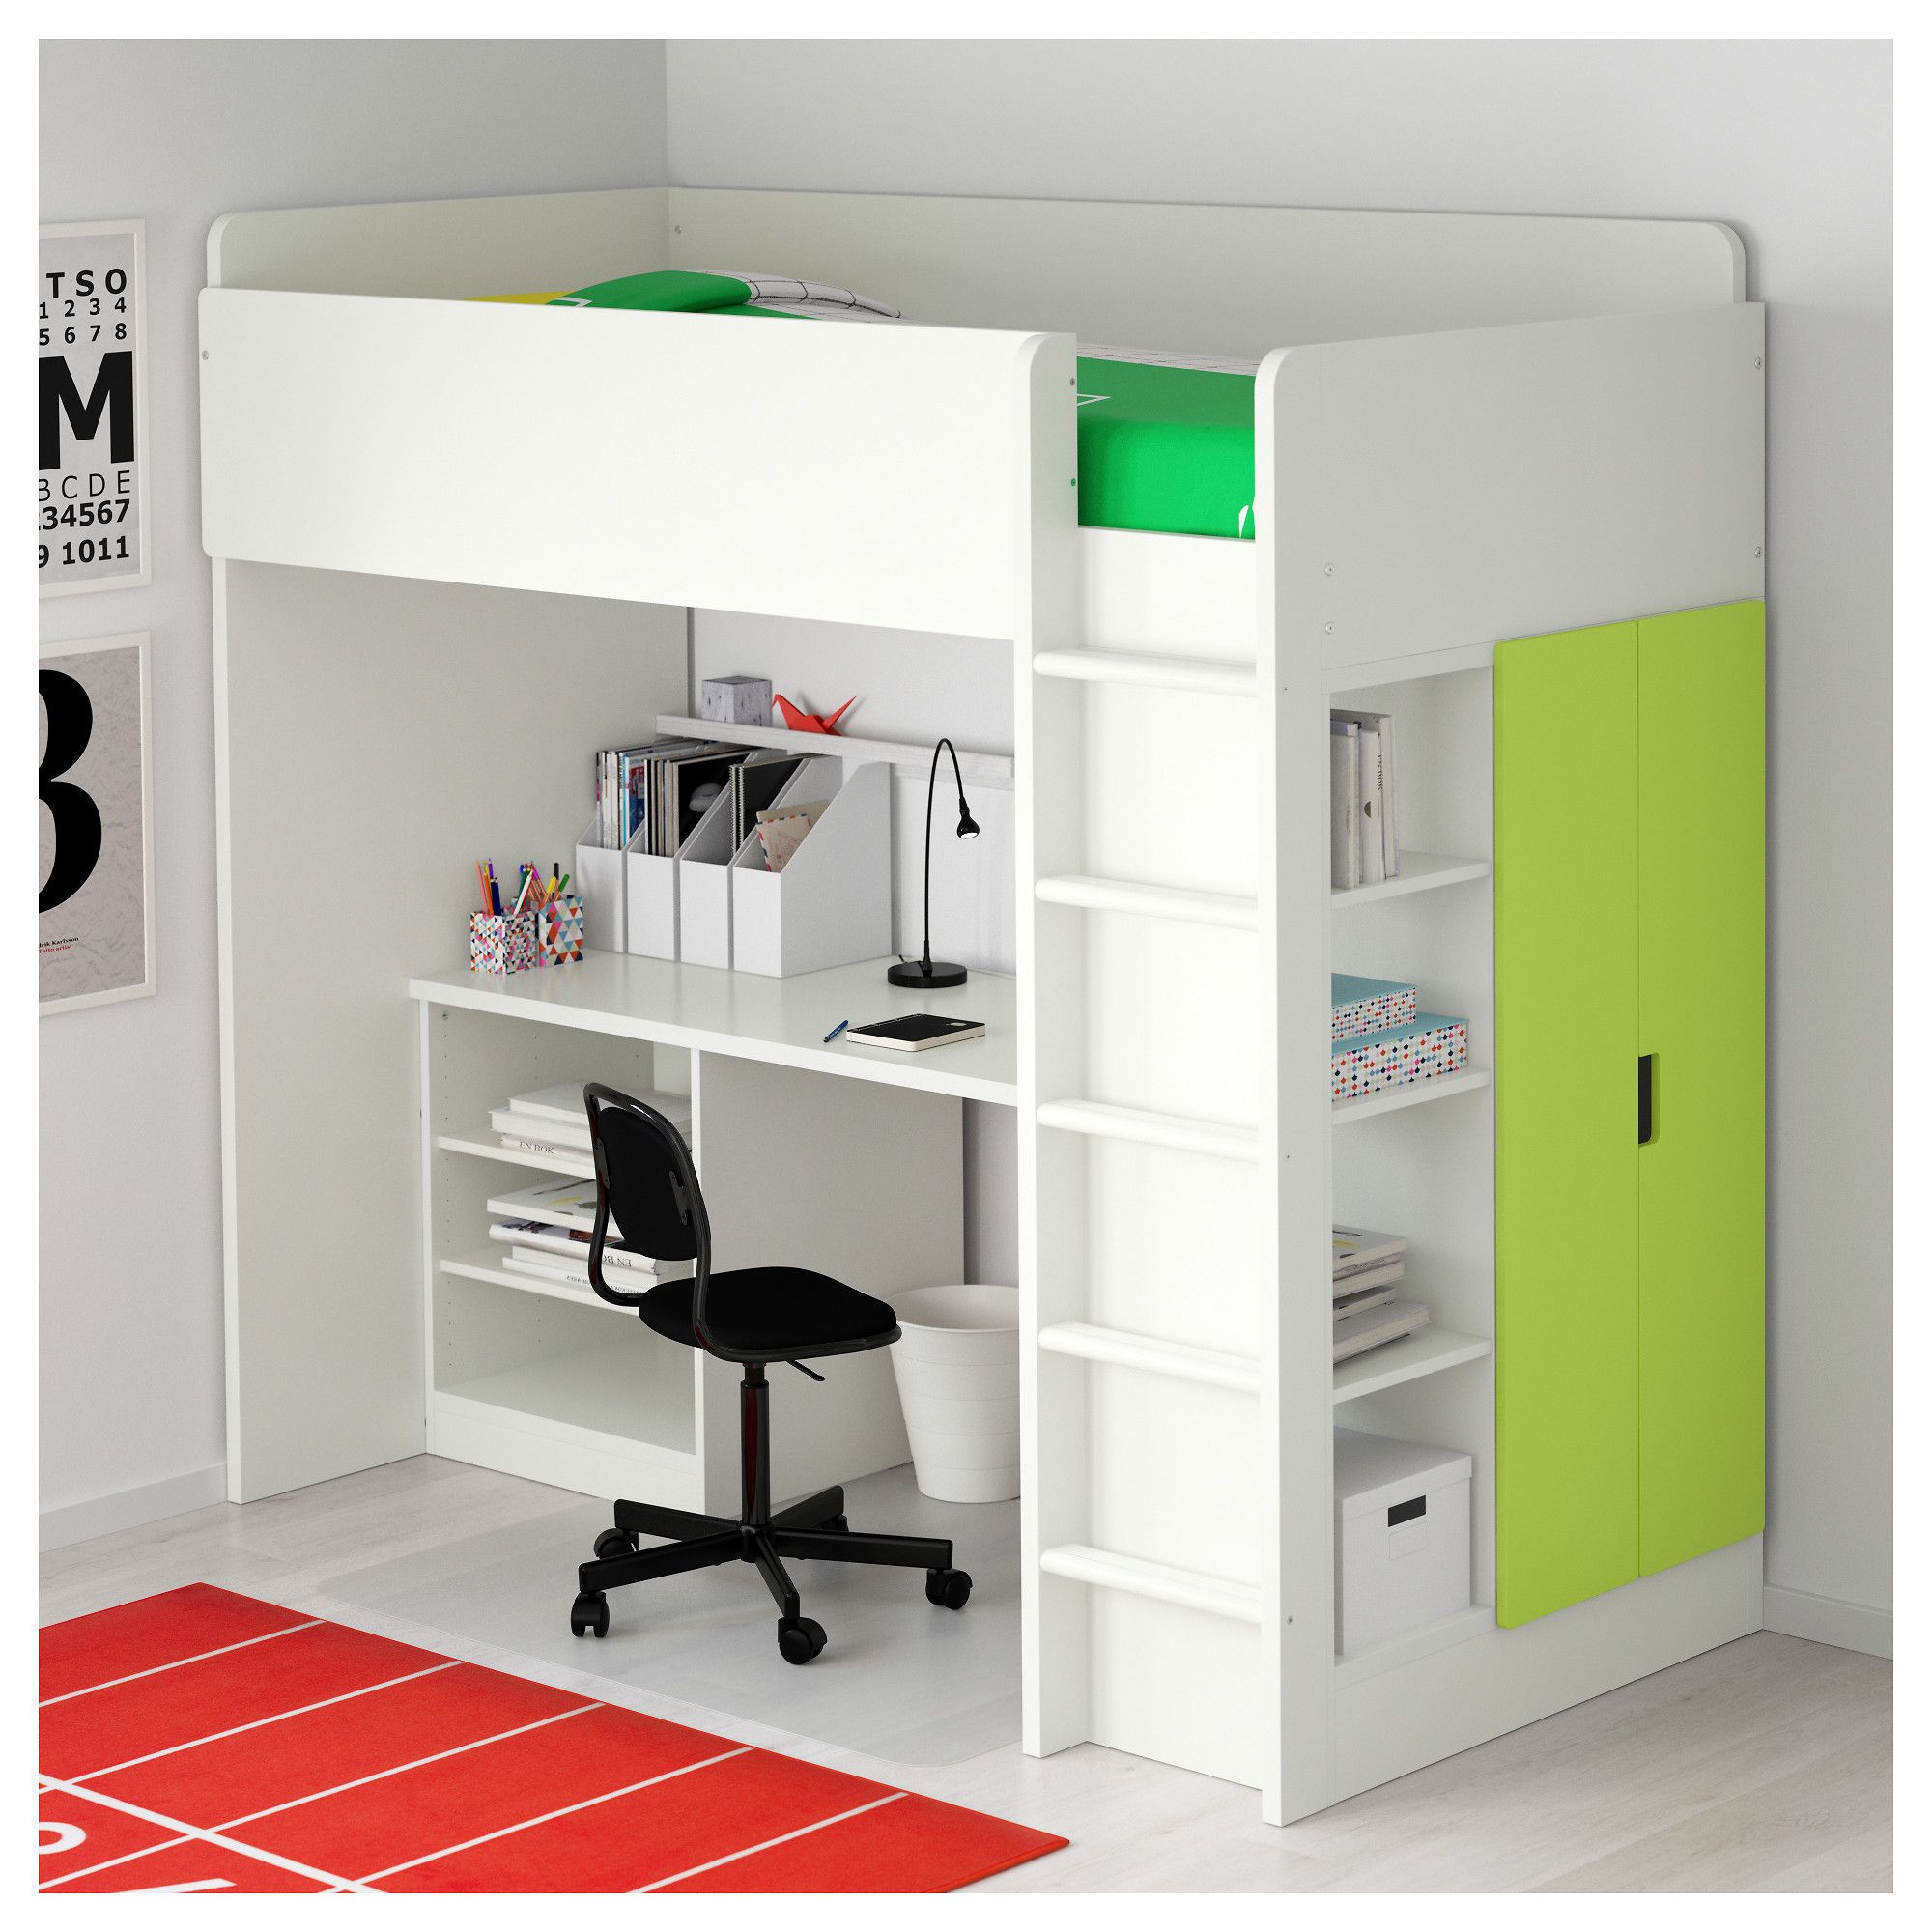 Loft bed with desk white  IKEA  STUVA Loft bed with  shelves doors white green  Products